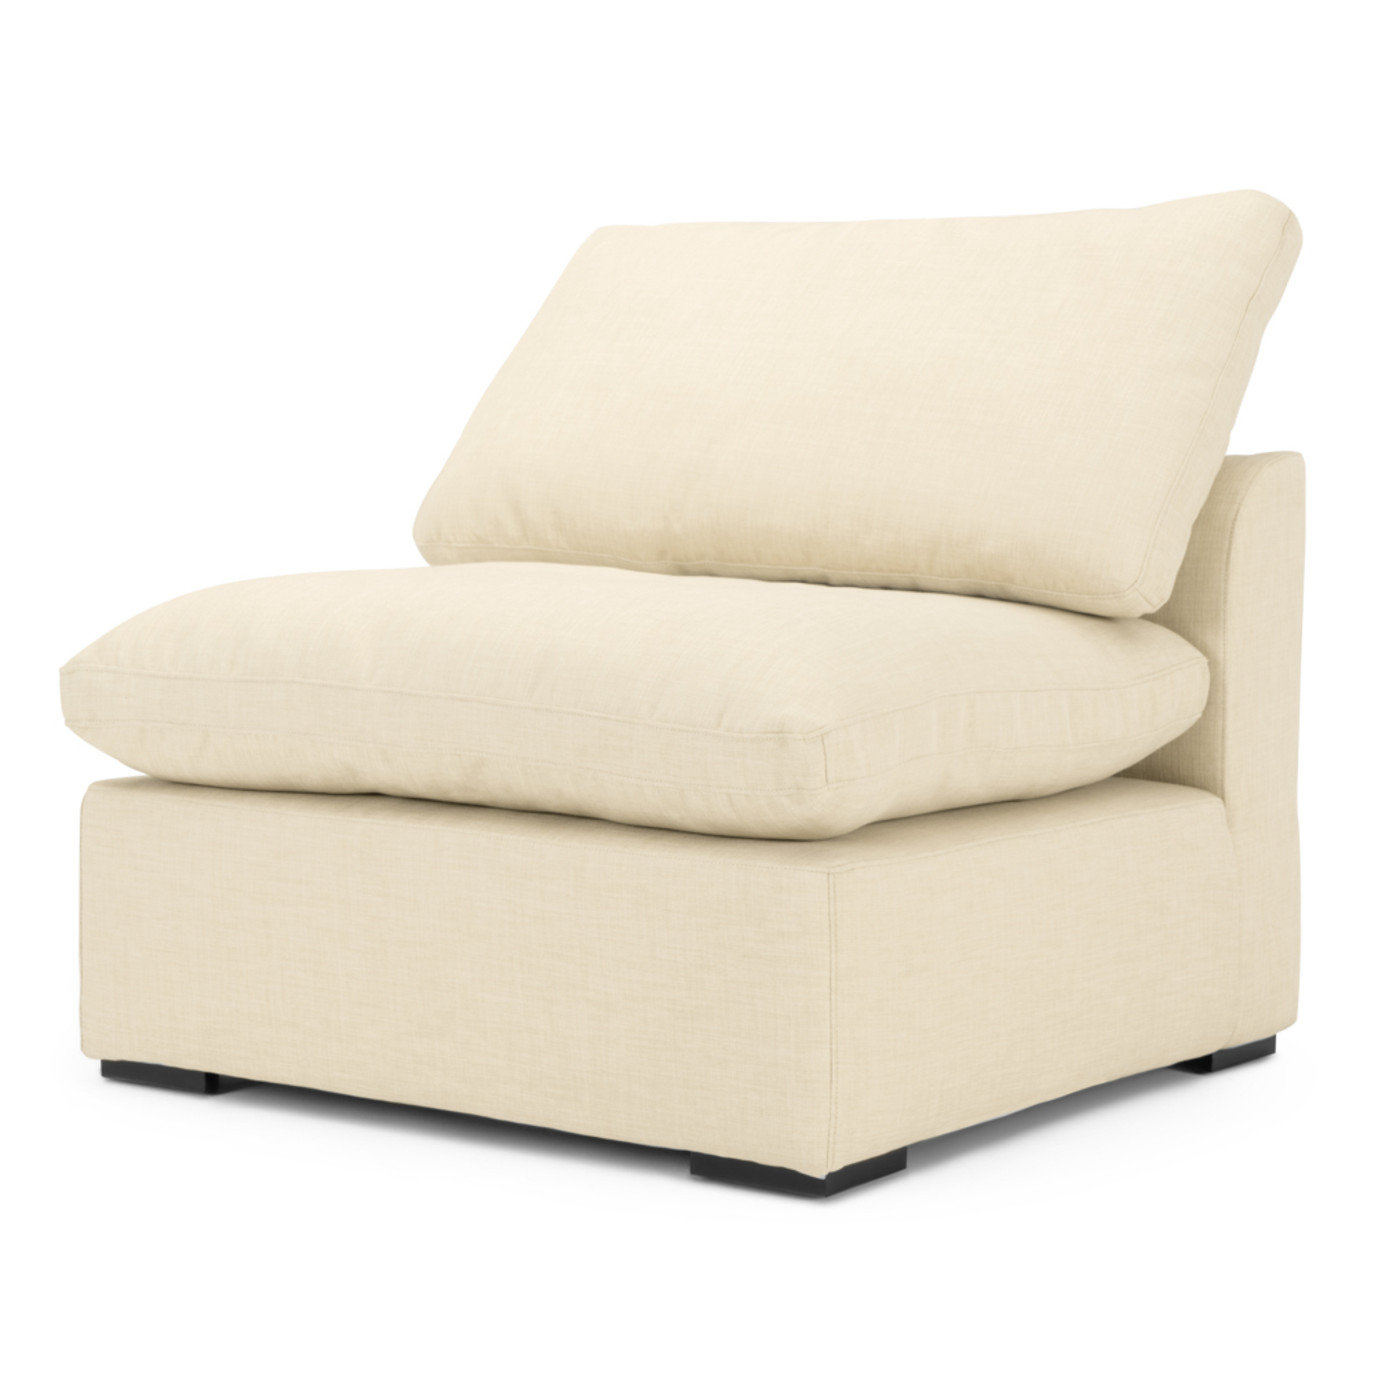 Aria Armless Chair - Beige